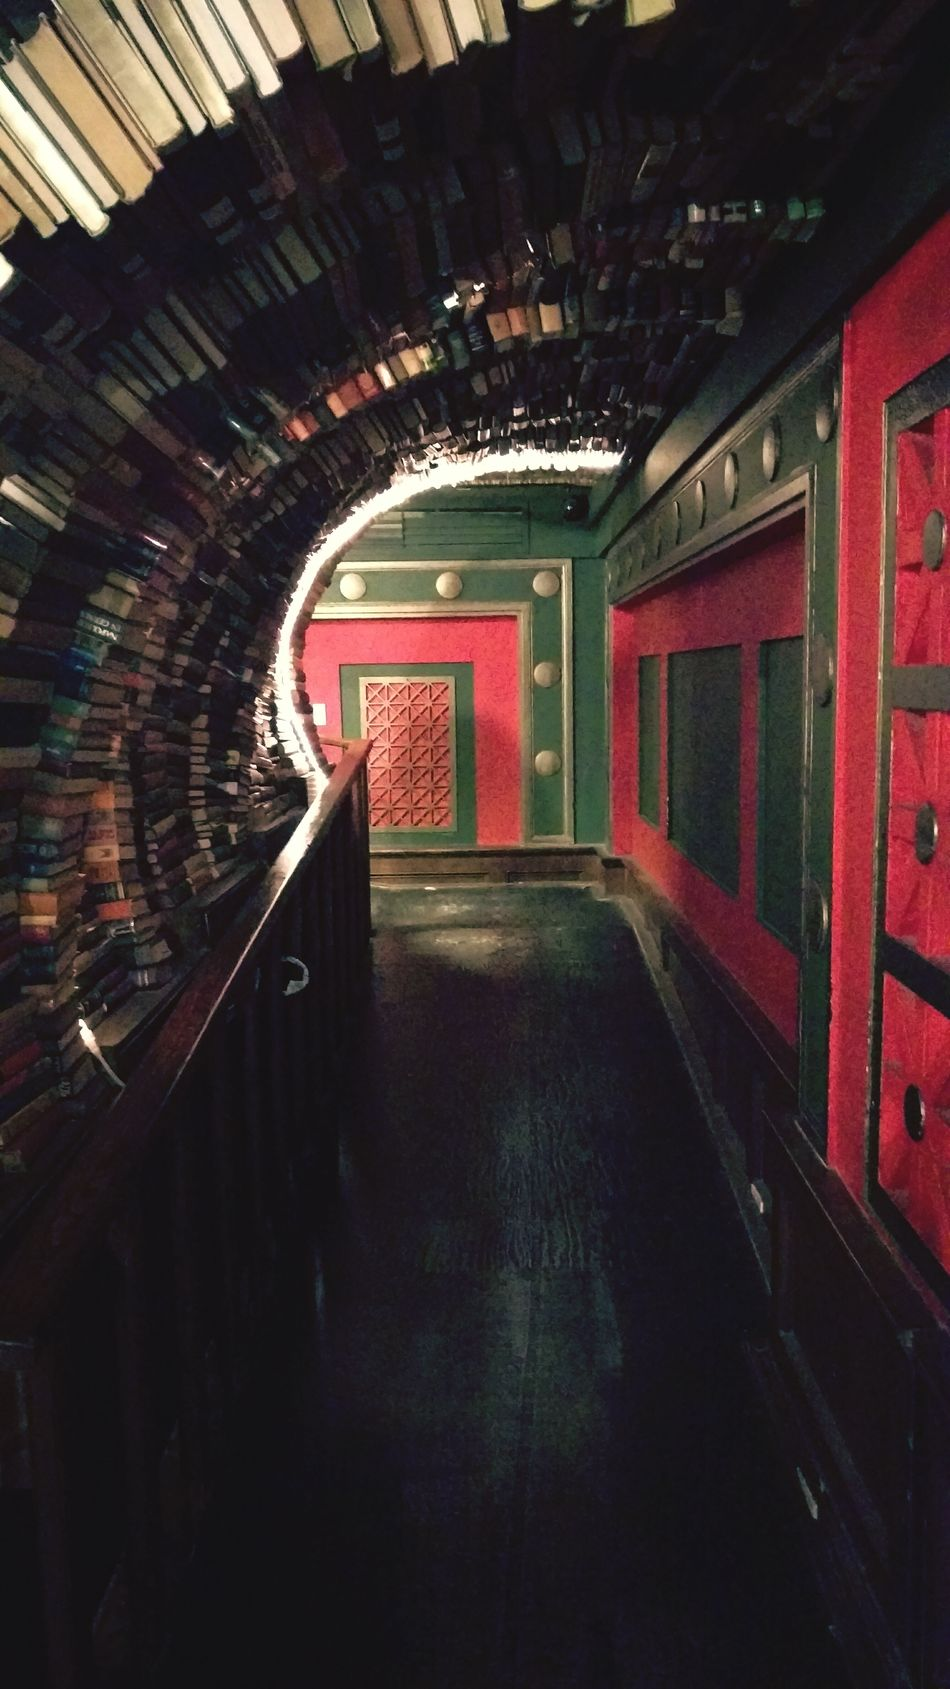 Book Tunnel The Last Bookstore Los Angeles, California Losangeles Downtown Los Angeles